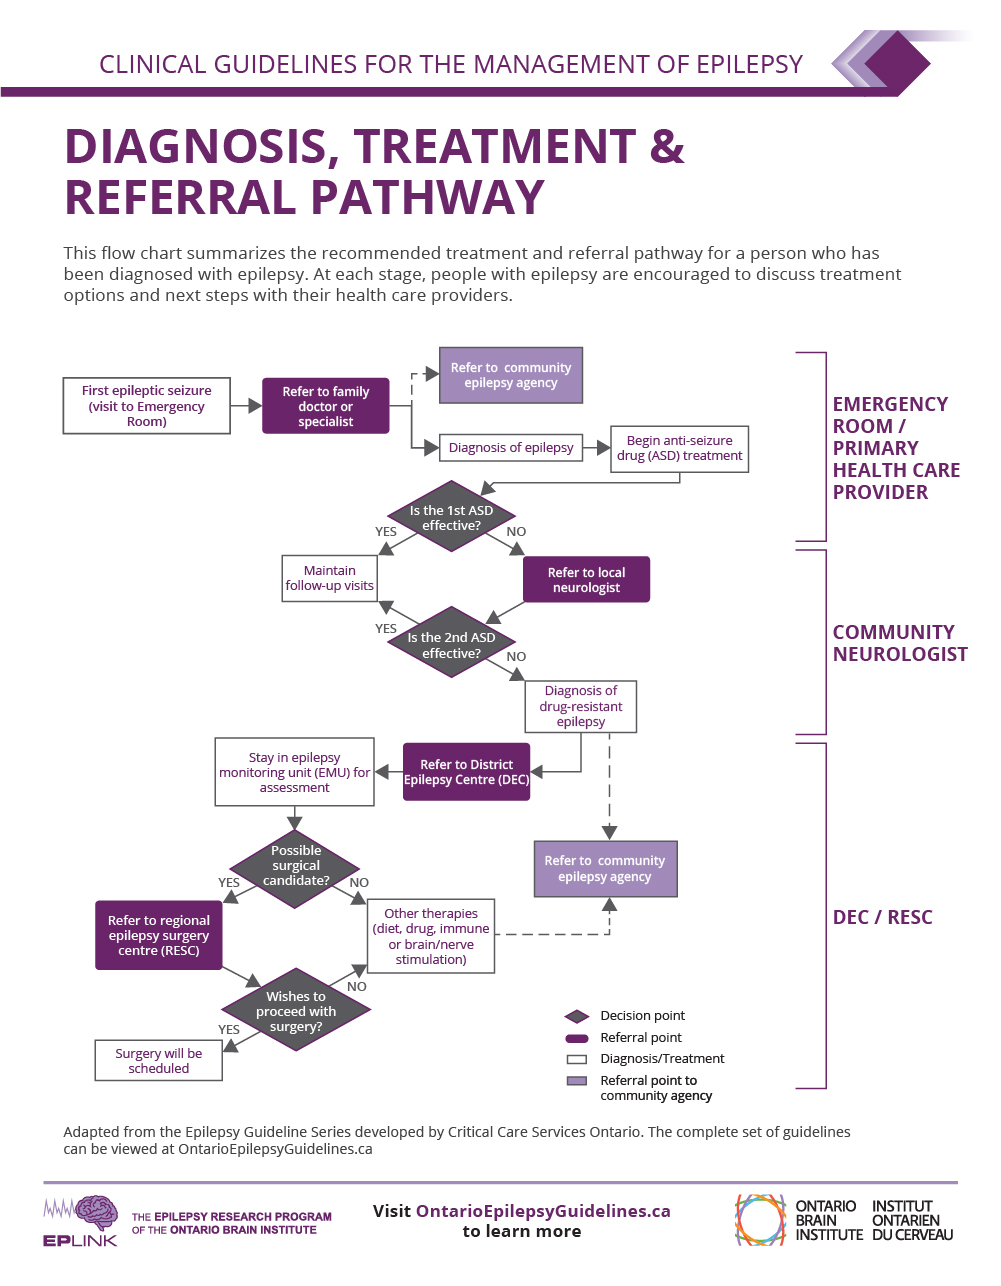 Patient Referral Pathway